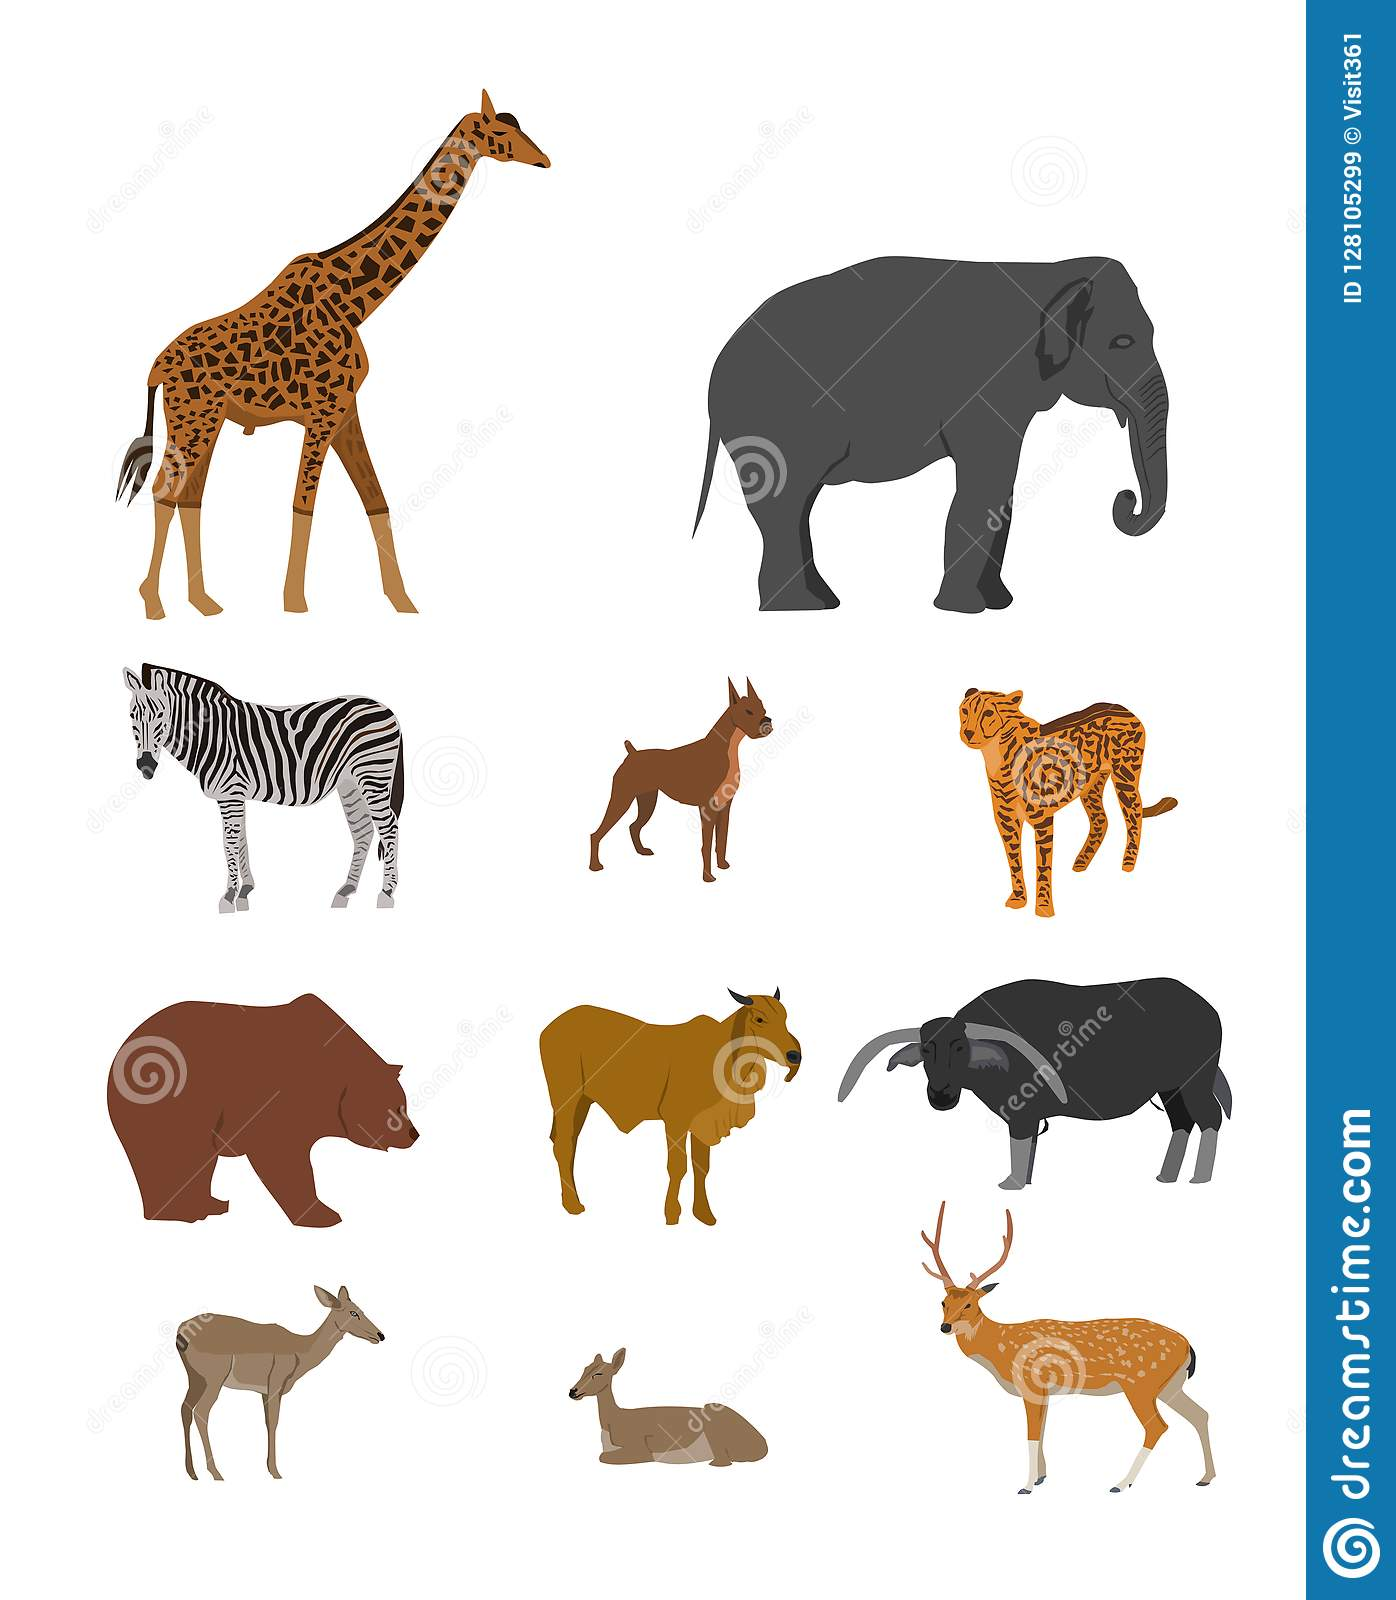 Wildlife Animal collection on white background